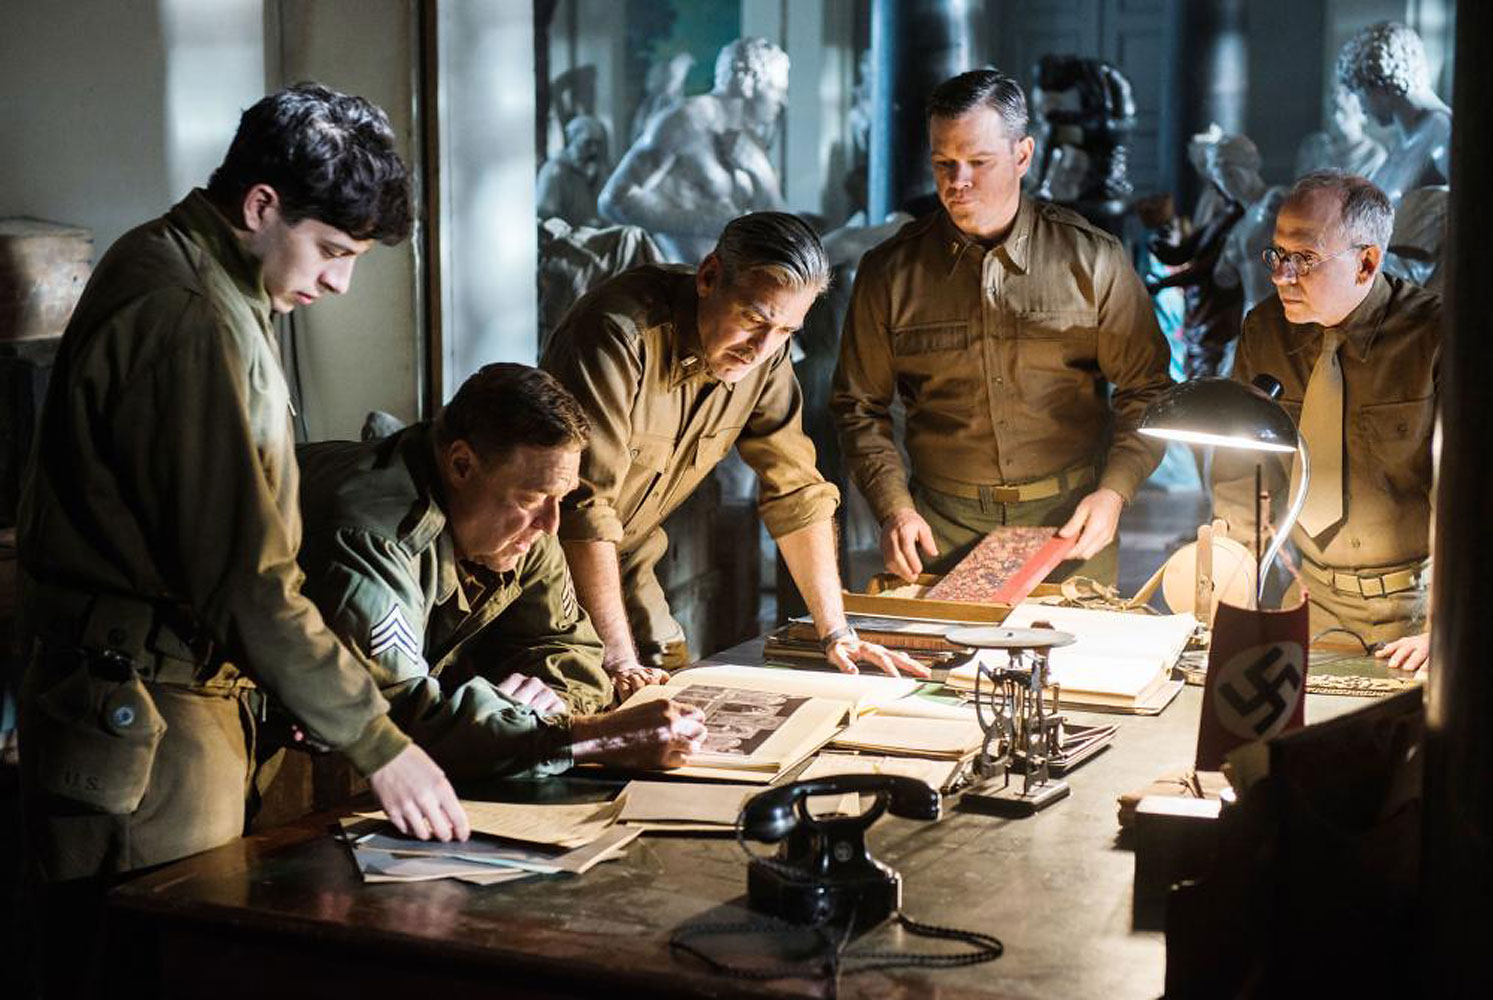 """George Clooney's newest film, Monuments Men, follows the exploits of an Allied platoon of seven """"Monuments Men"""" who enter Germany during the end of World War II to rescue art stolen by the Nazis.                                       The movie is based off of the real life """"Monuments Men,  a group of more than 300 men and women from thirteen countries who worked together to protect and recover the stolen cultural artifacts. Their ranks ranged from museum directors to architects — and they would ultimately help return more than five million artistic and cultural items plundered by the Nazis."""